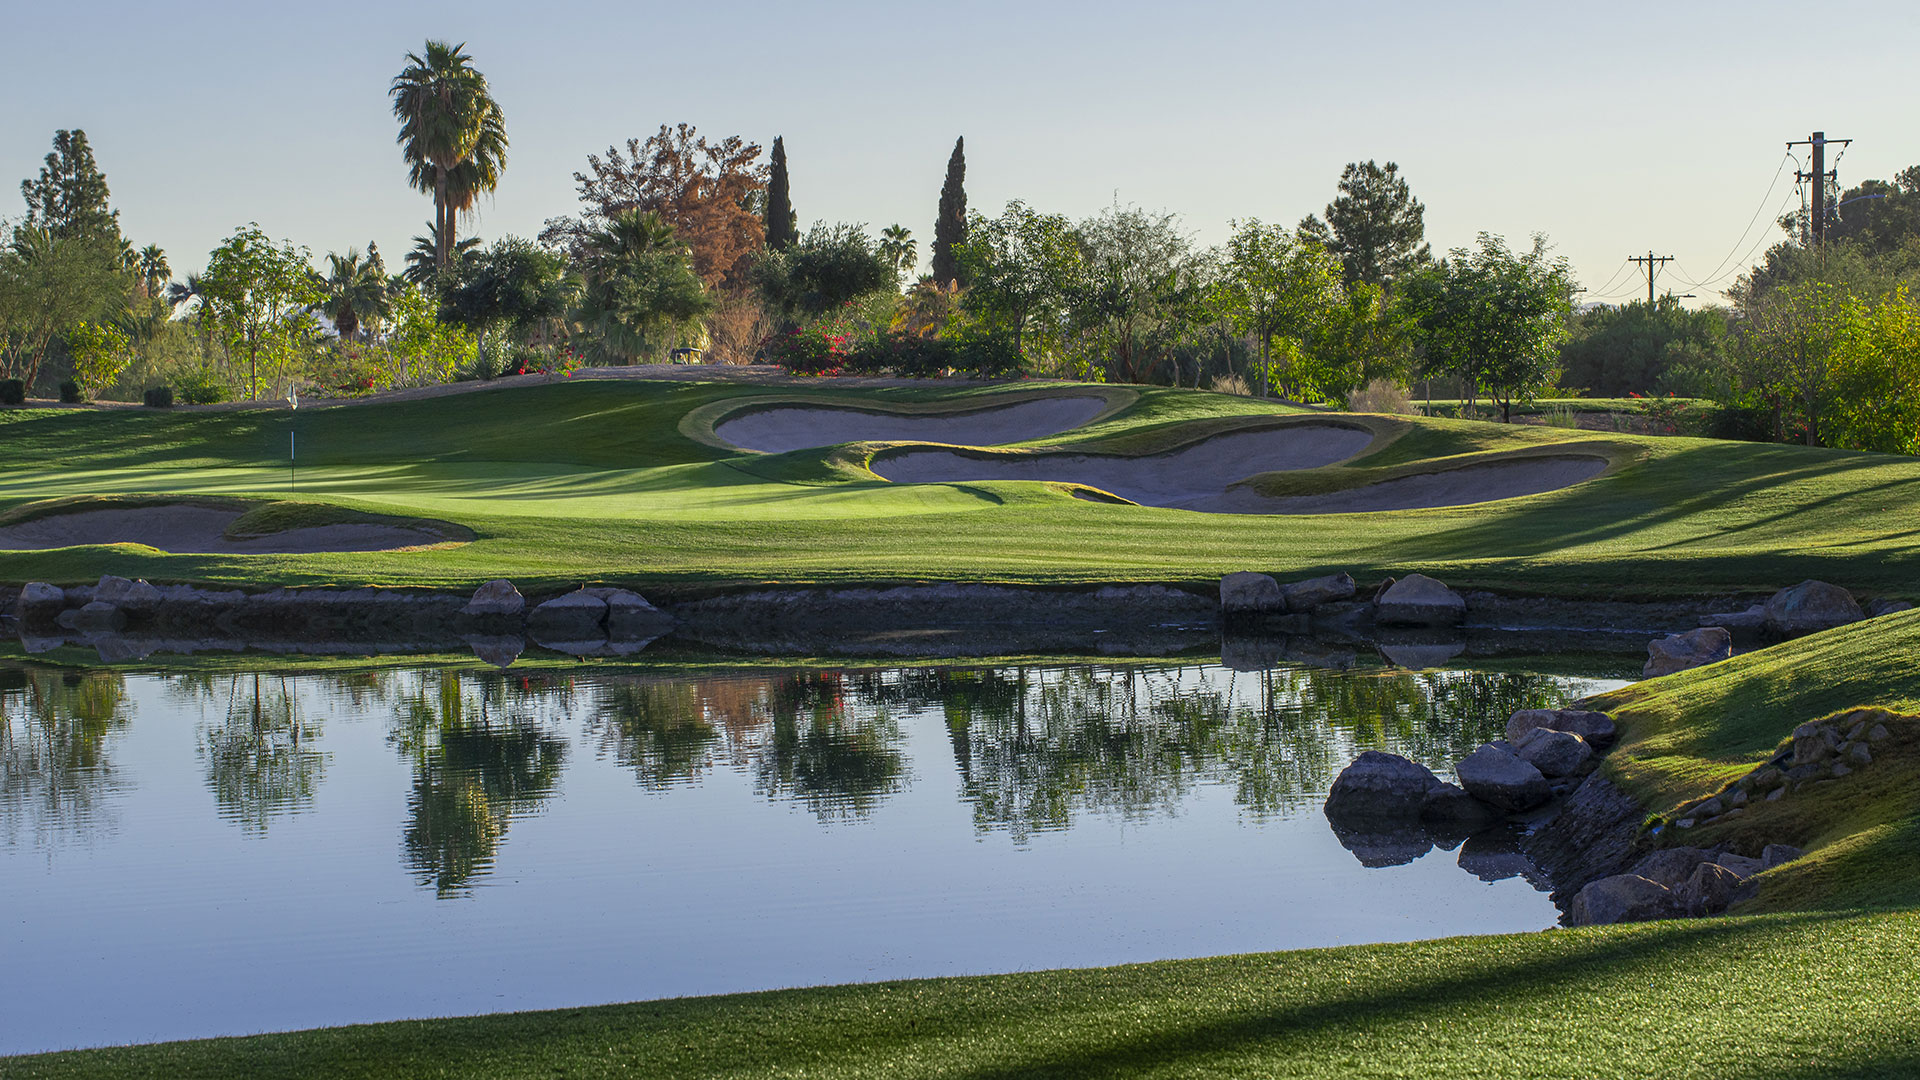 The scenic Phoenician<sup>®</sup> Golf Course surrounds the community.